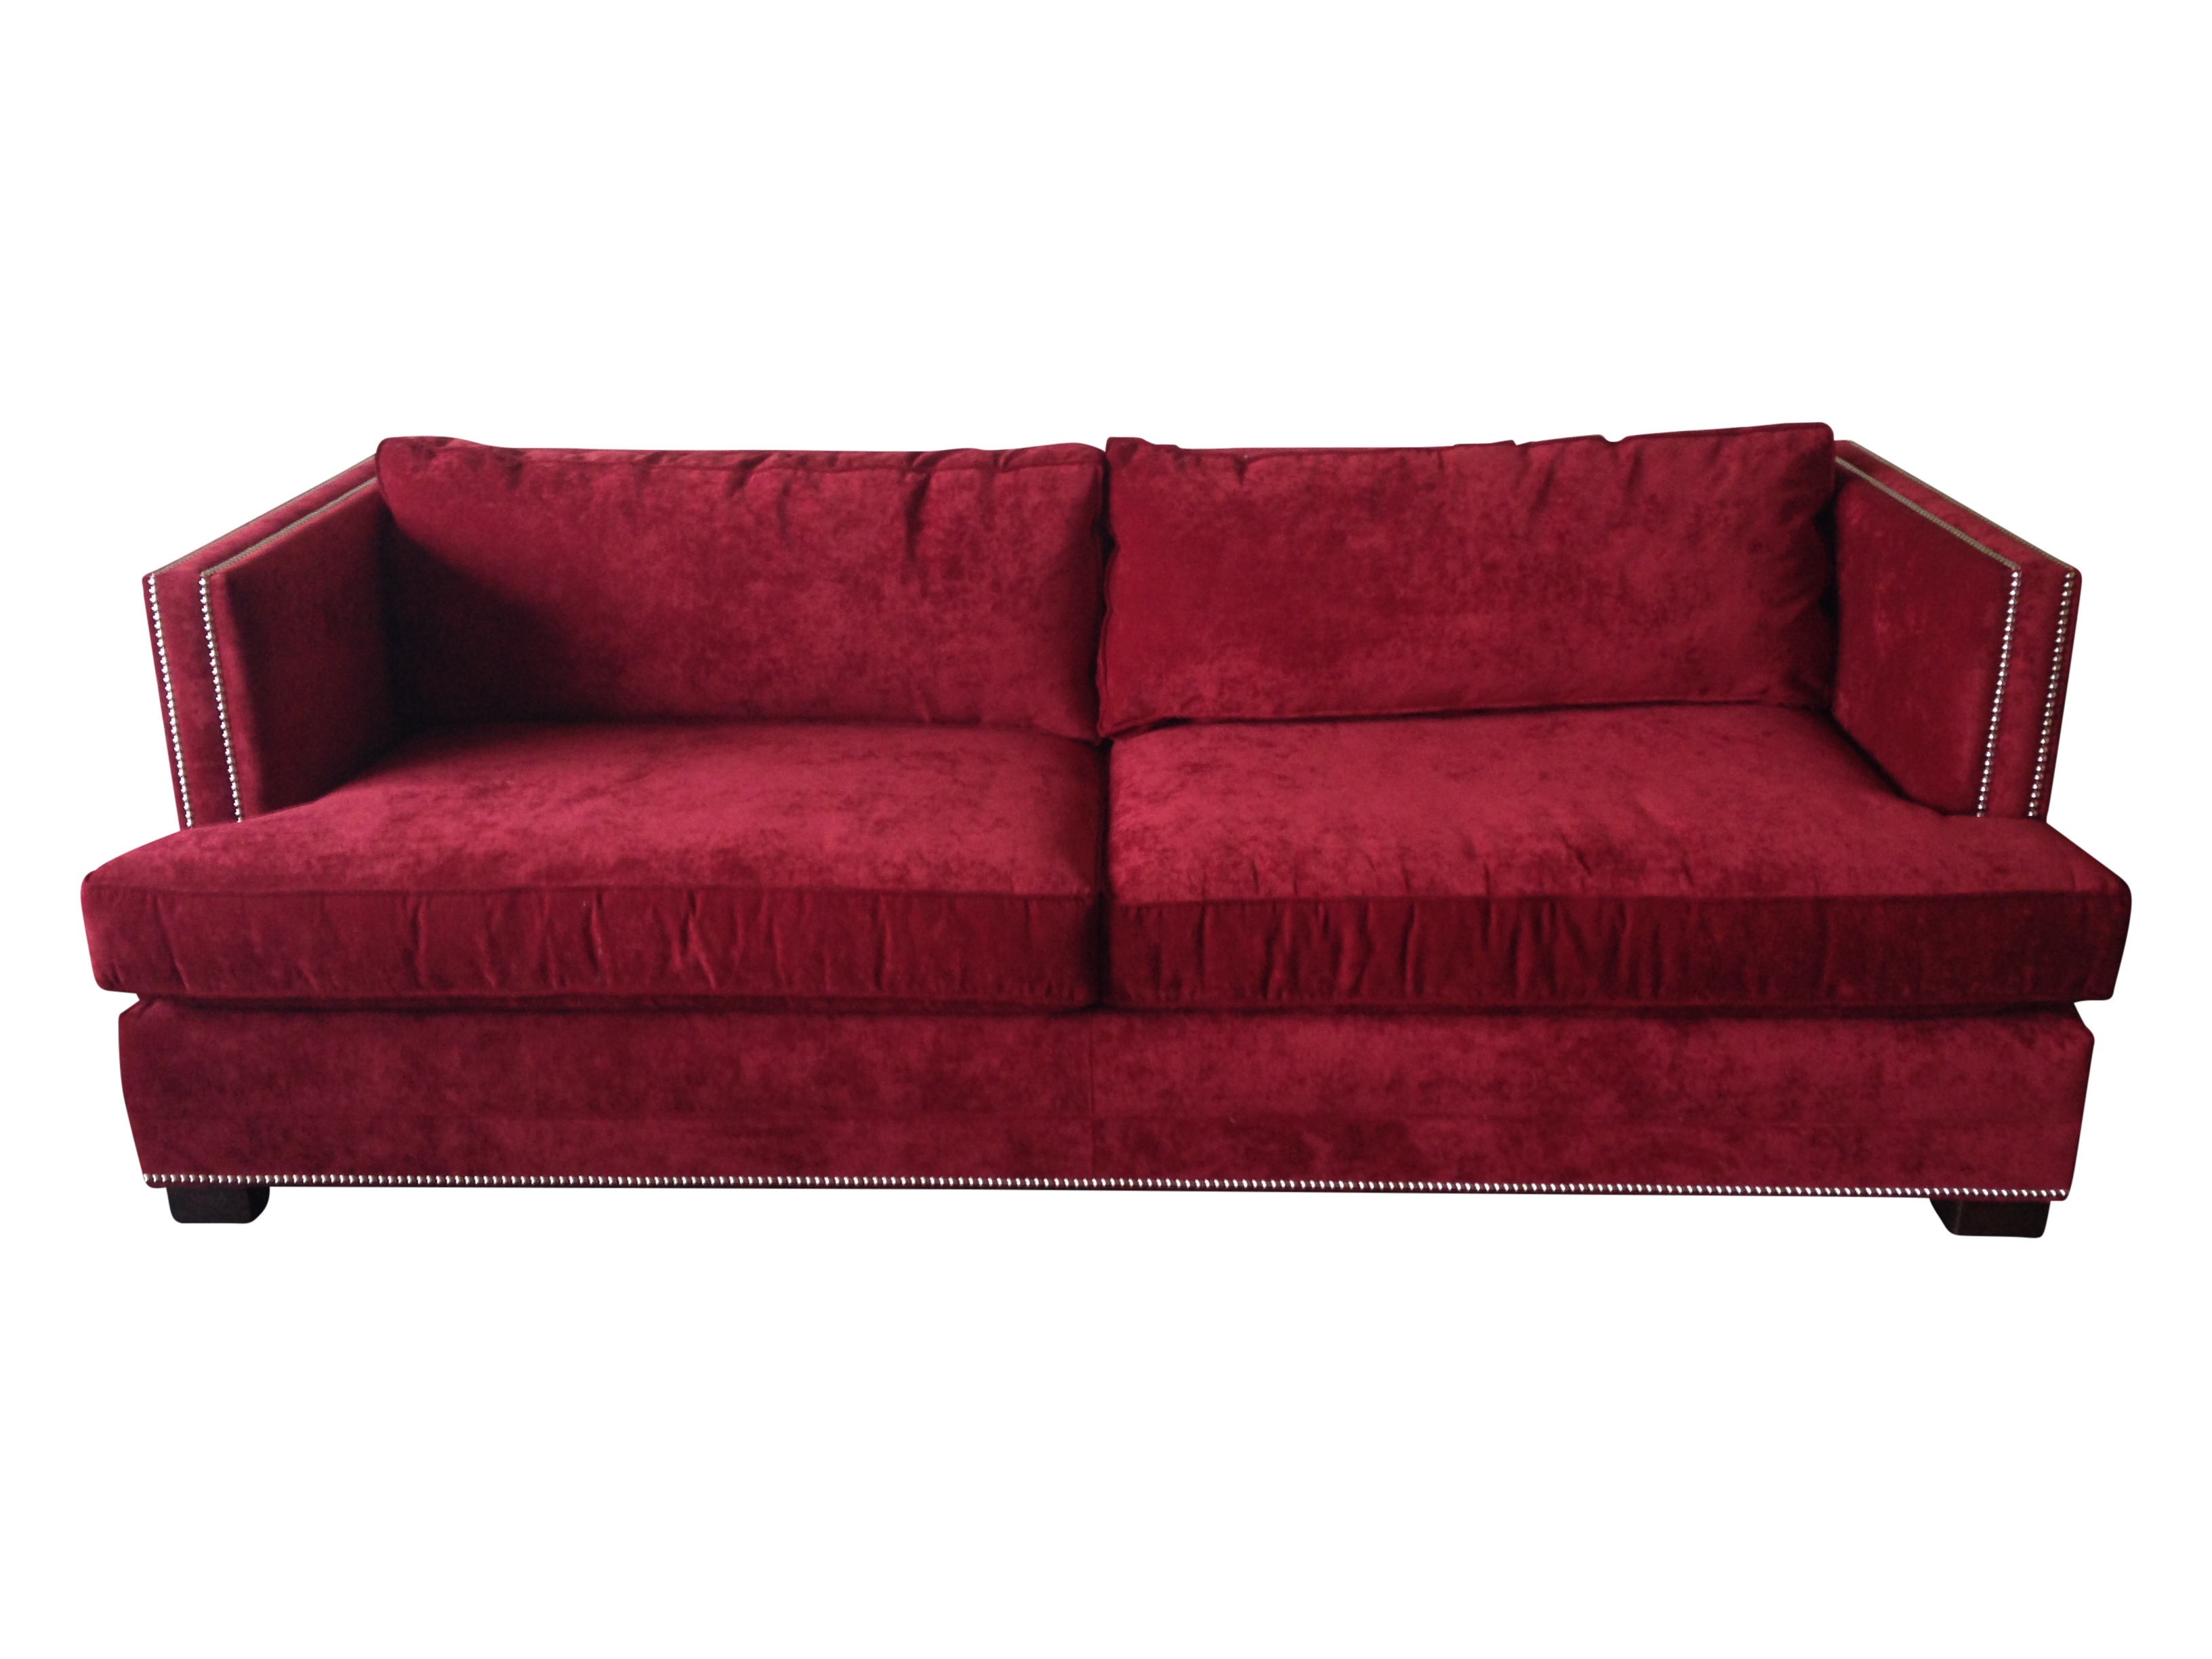 Mitchell gold 94quot keaton sofa in eller crimson chairish for Sofa eller couch